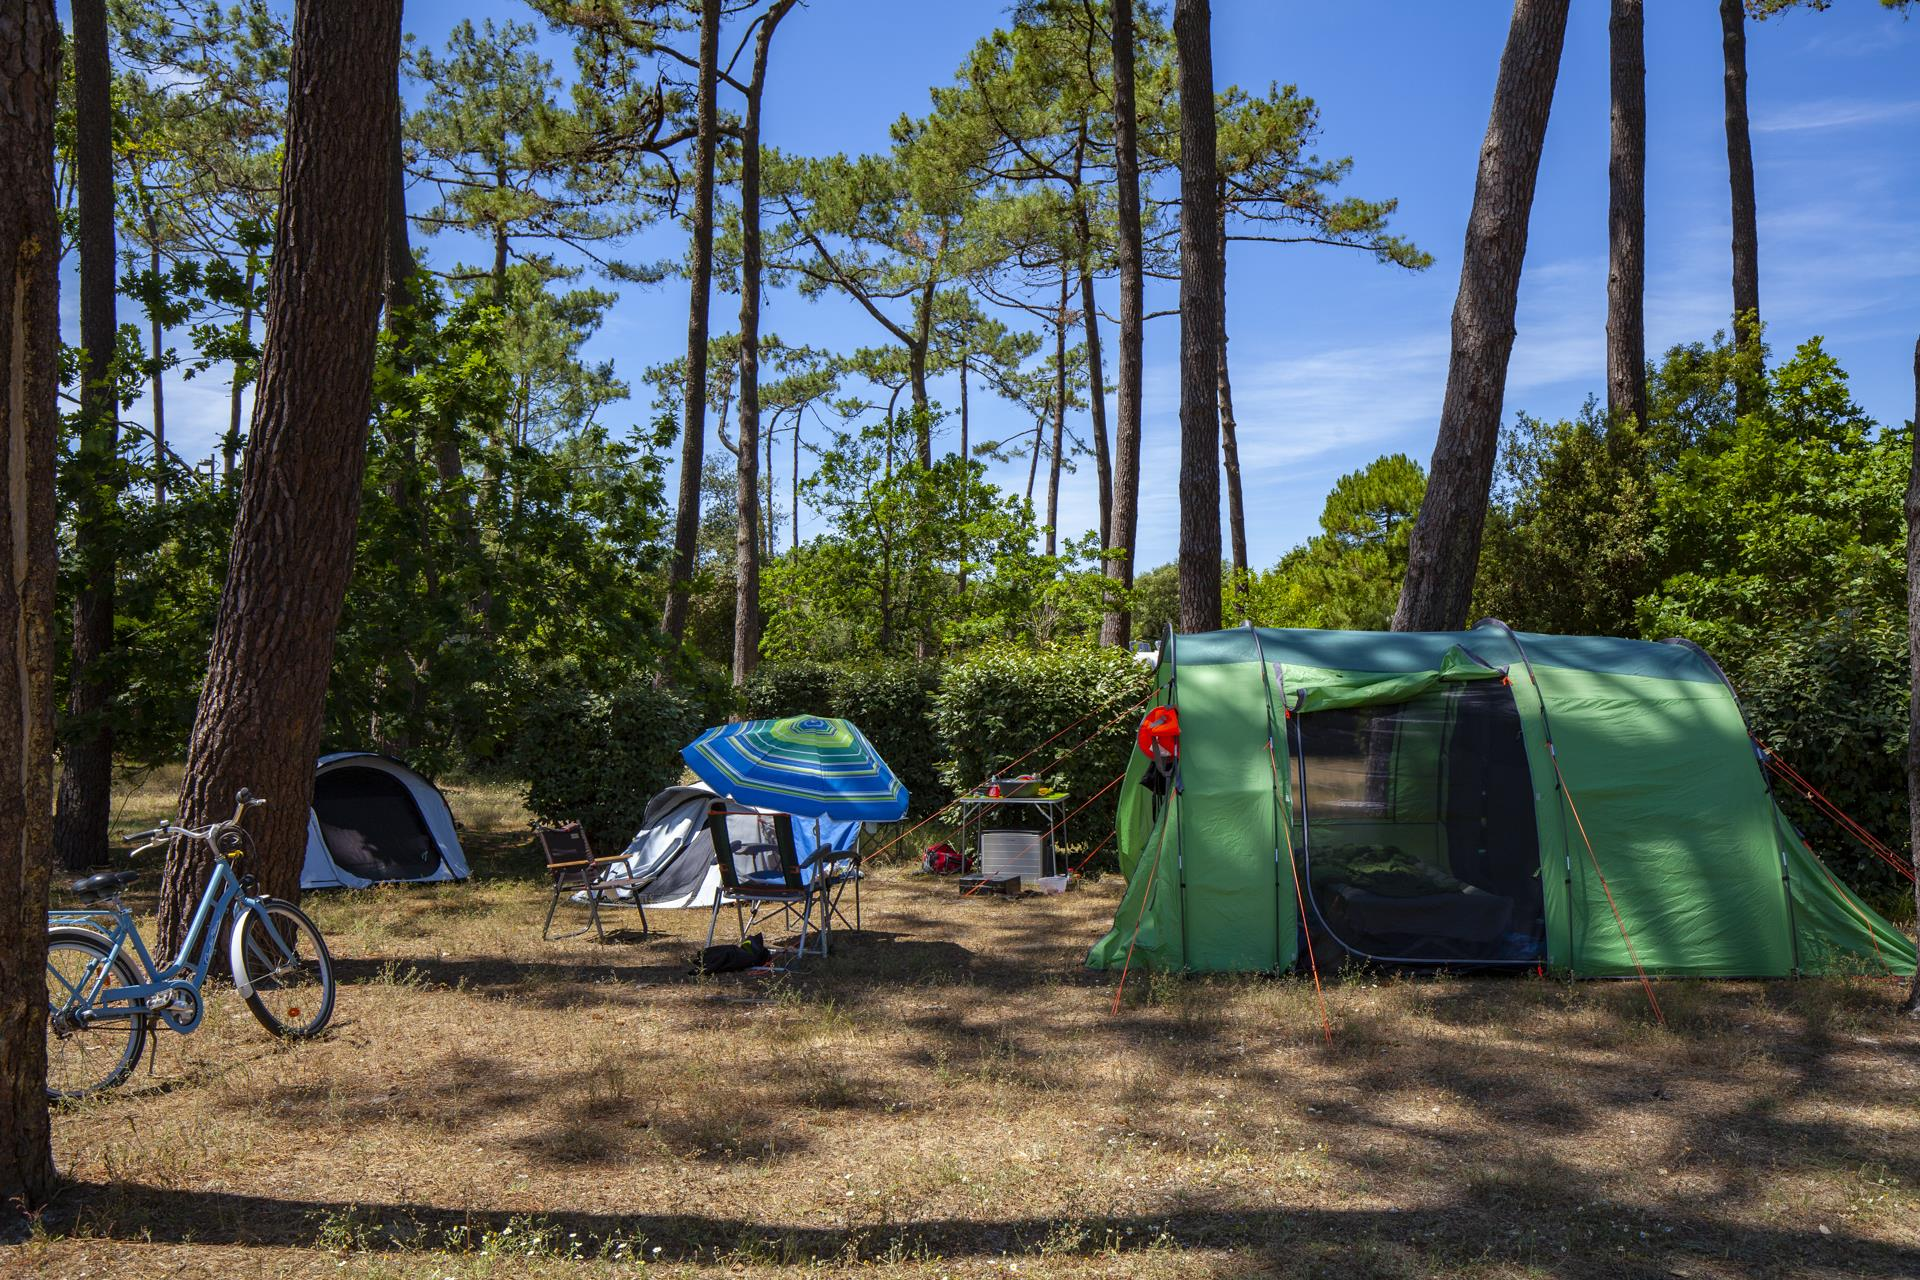 Emplacement - Emplacement Camping-Car ** - Camping Sandaya Soulac Plage